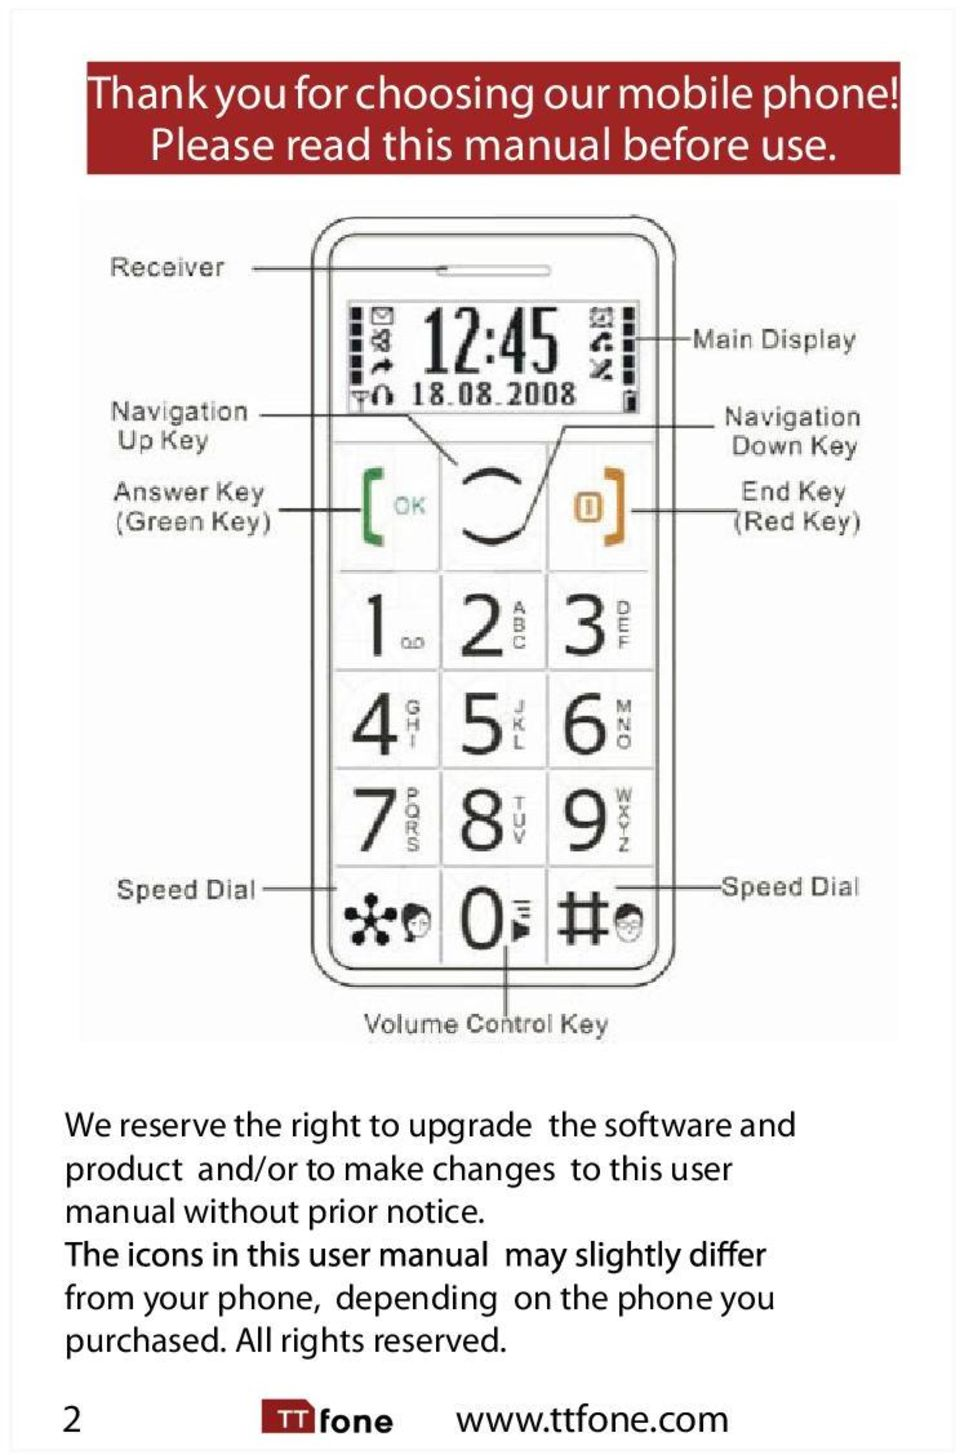 Thank You For Choosing Our Mobile Phone Please Read This Manual